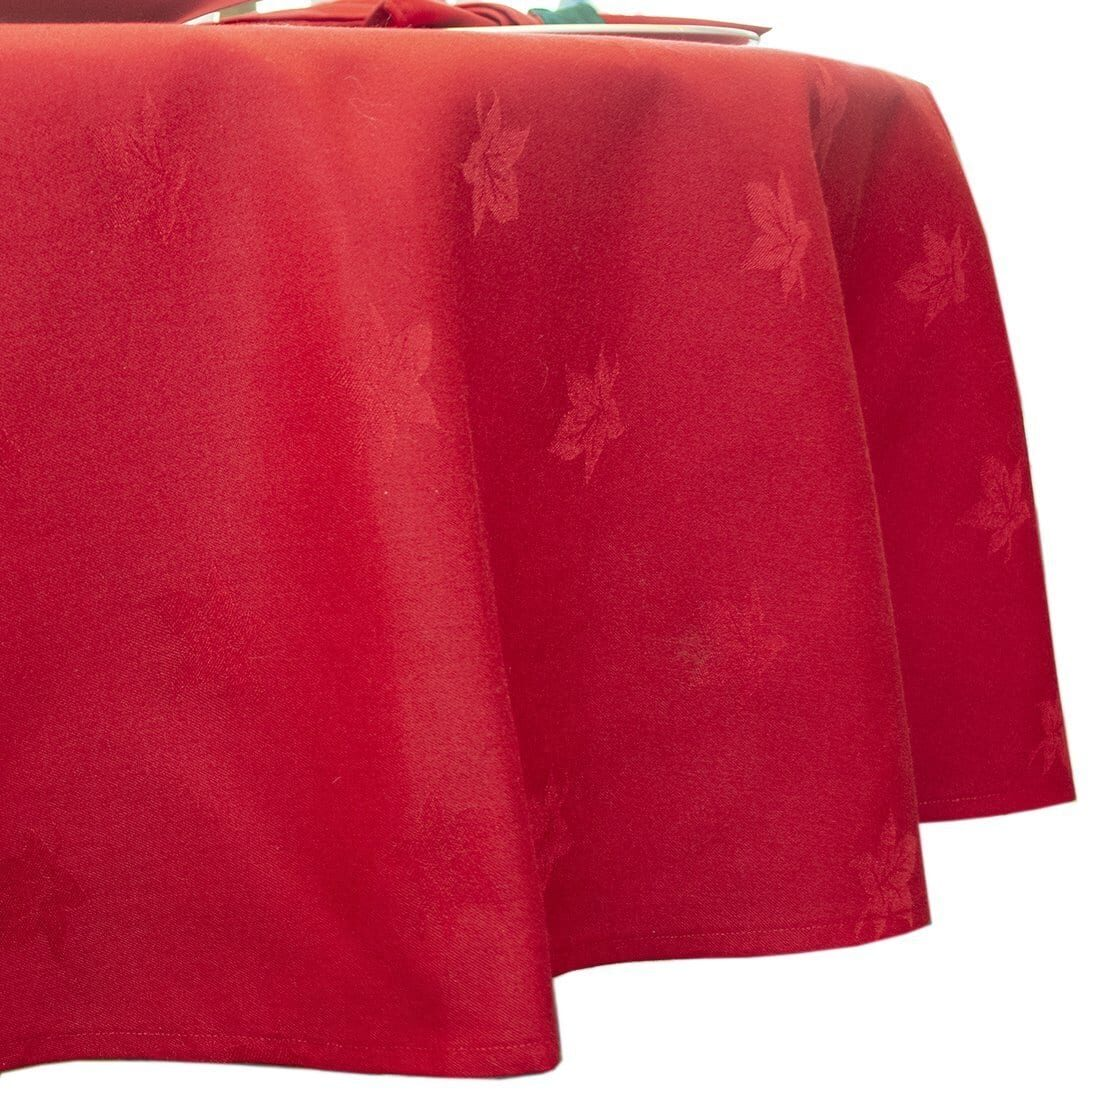 Sweet Pea Linens - Solid Red Jacquard 90 inch Round Table Cloth (SKU#: R-1065-Y4) - Product Image